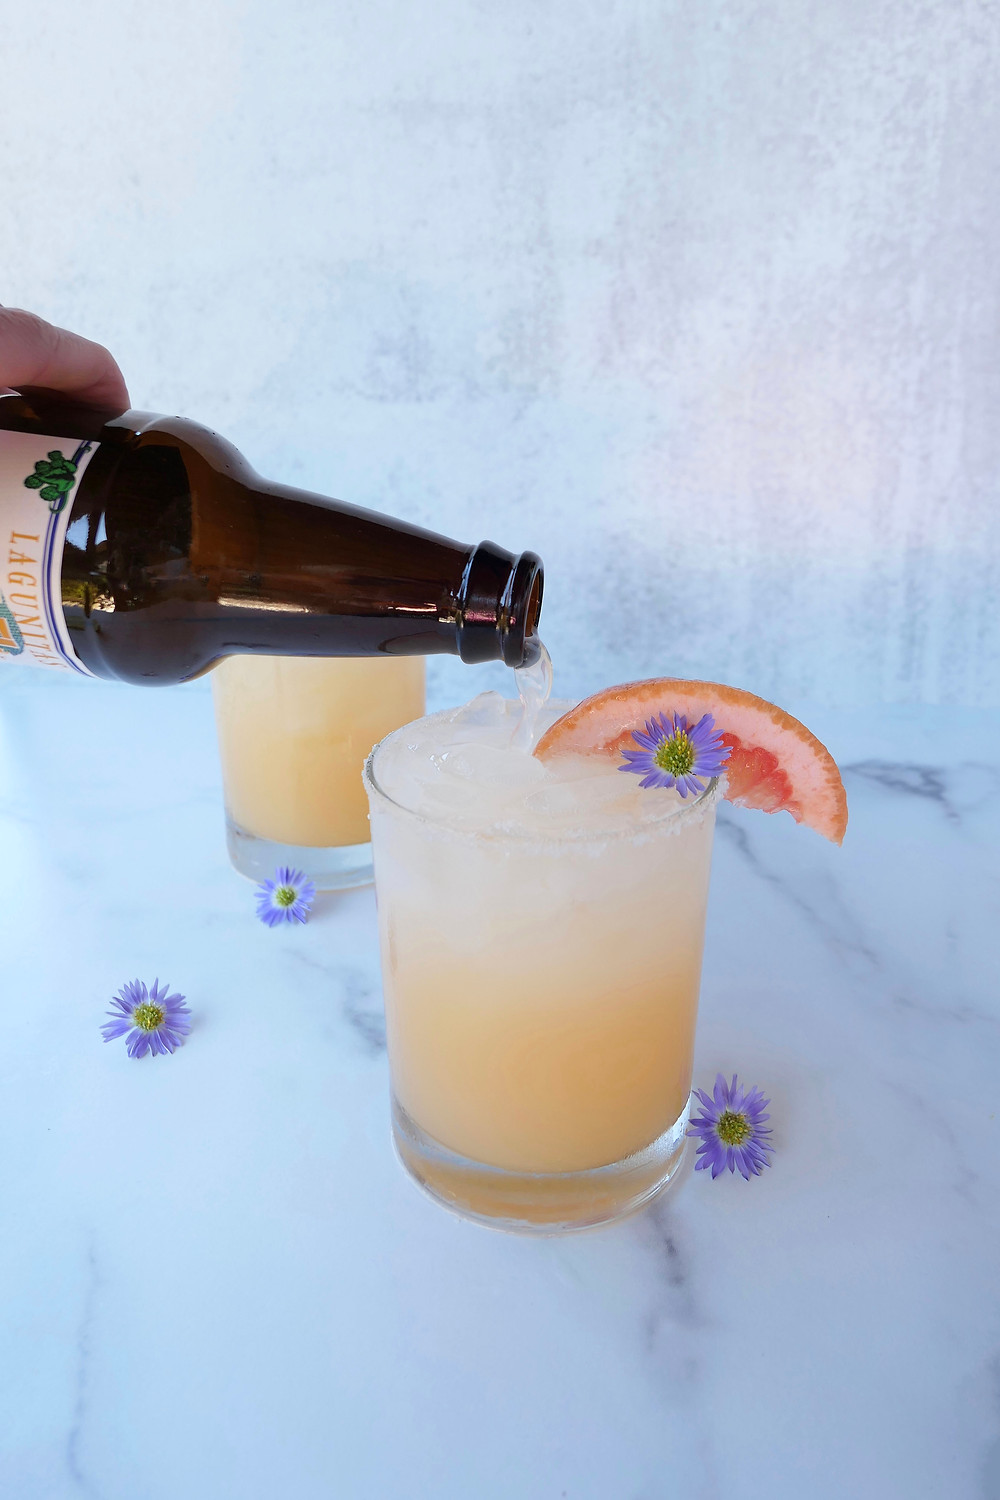 The Herb Somm's Summer Citrus Hi-Fi Paloma CBD and THC Cannabis Drink